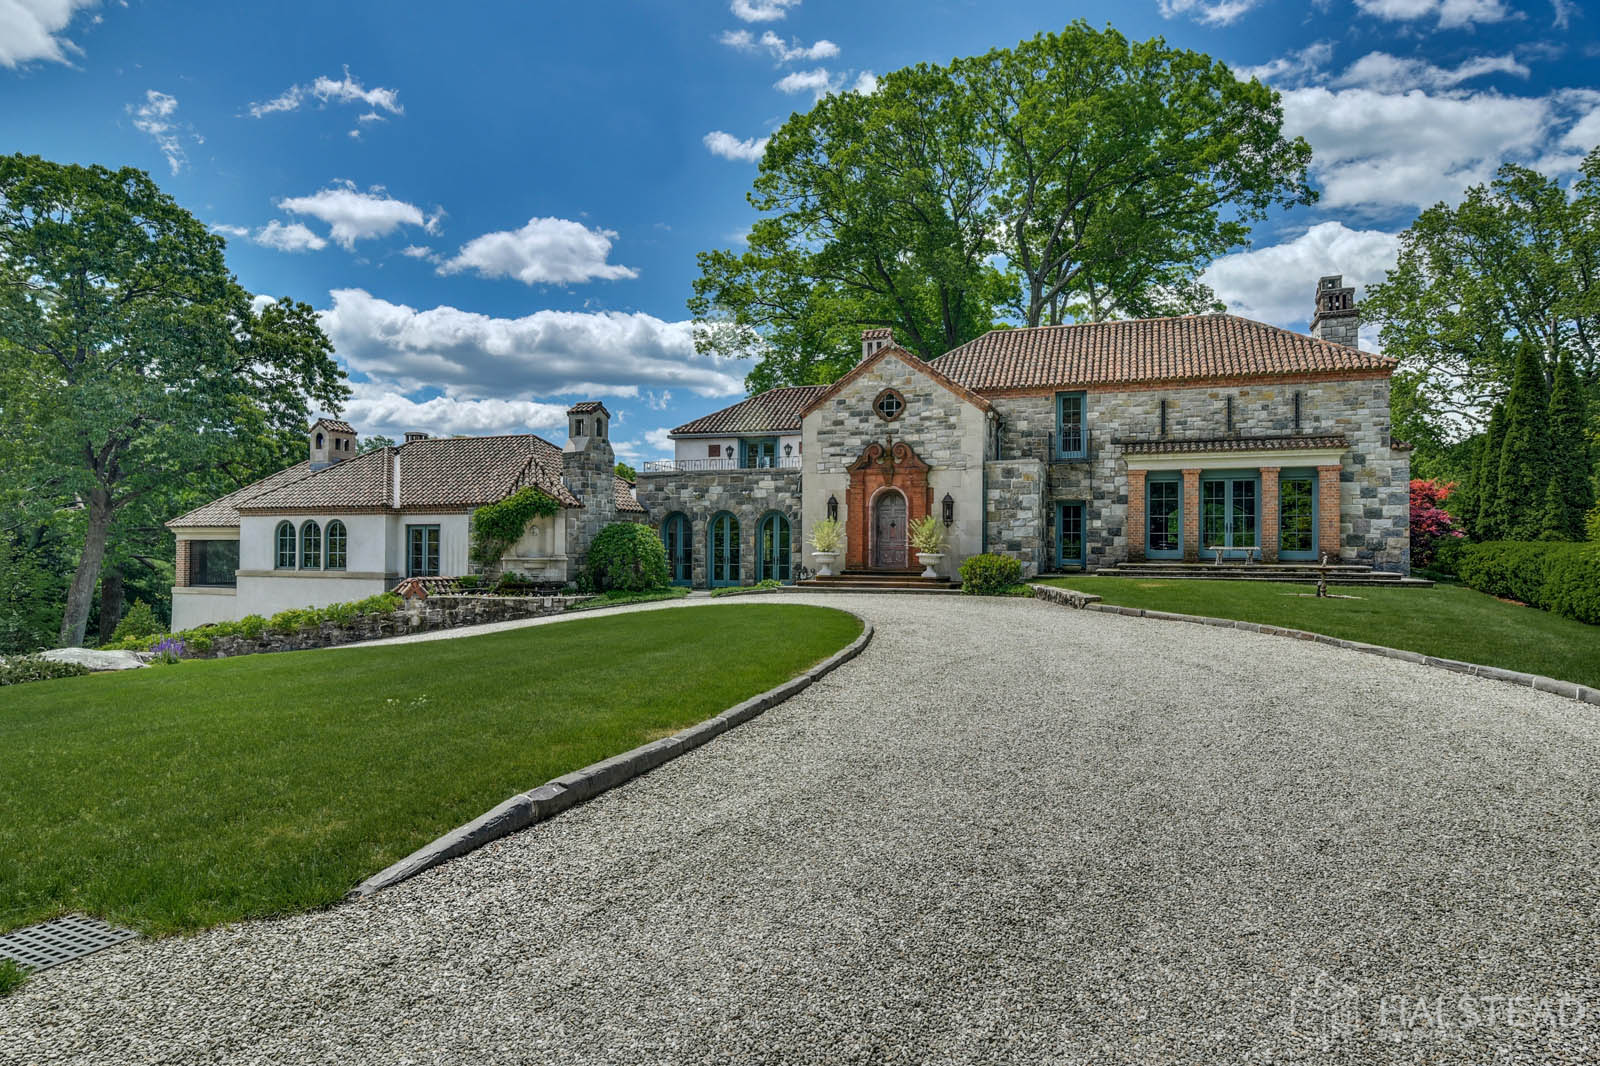 227 OLD KINGS HIGHWAY SOUTH, Darien, $4,900,000, Web #: 170290963